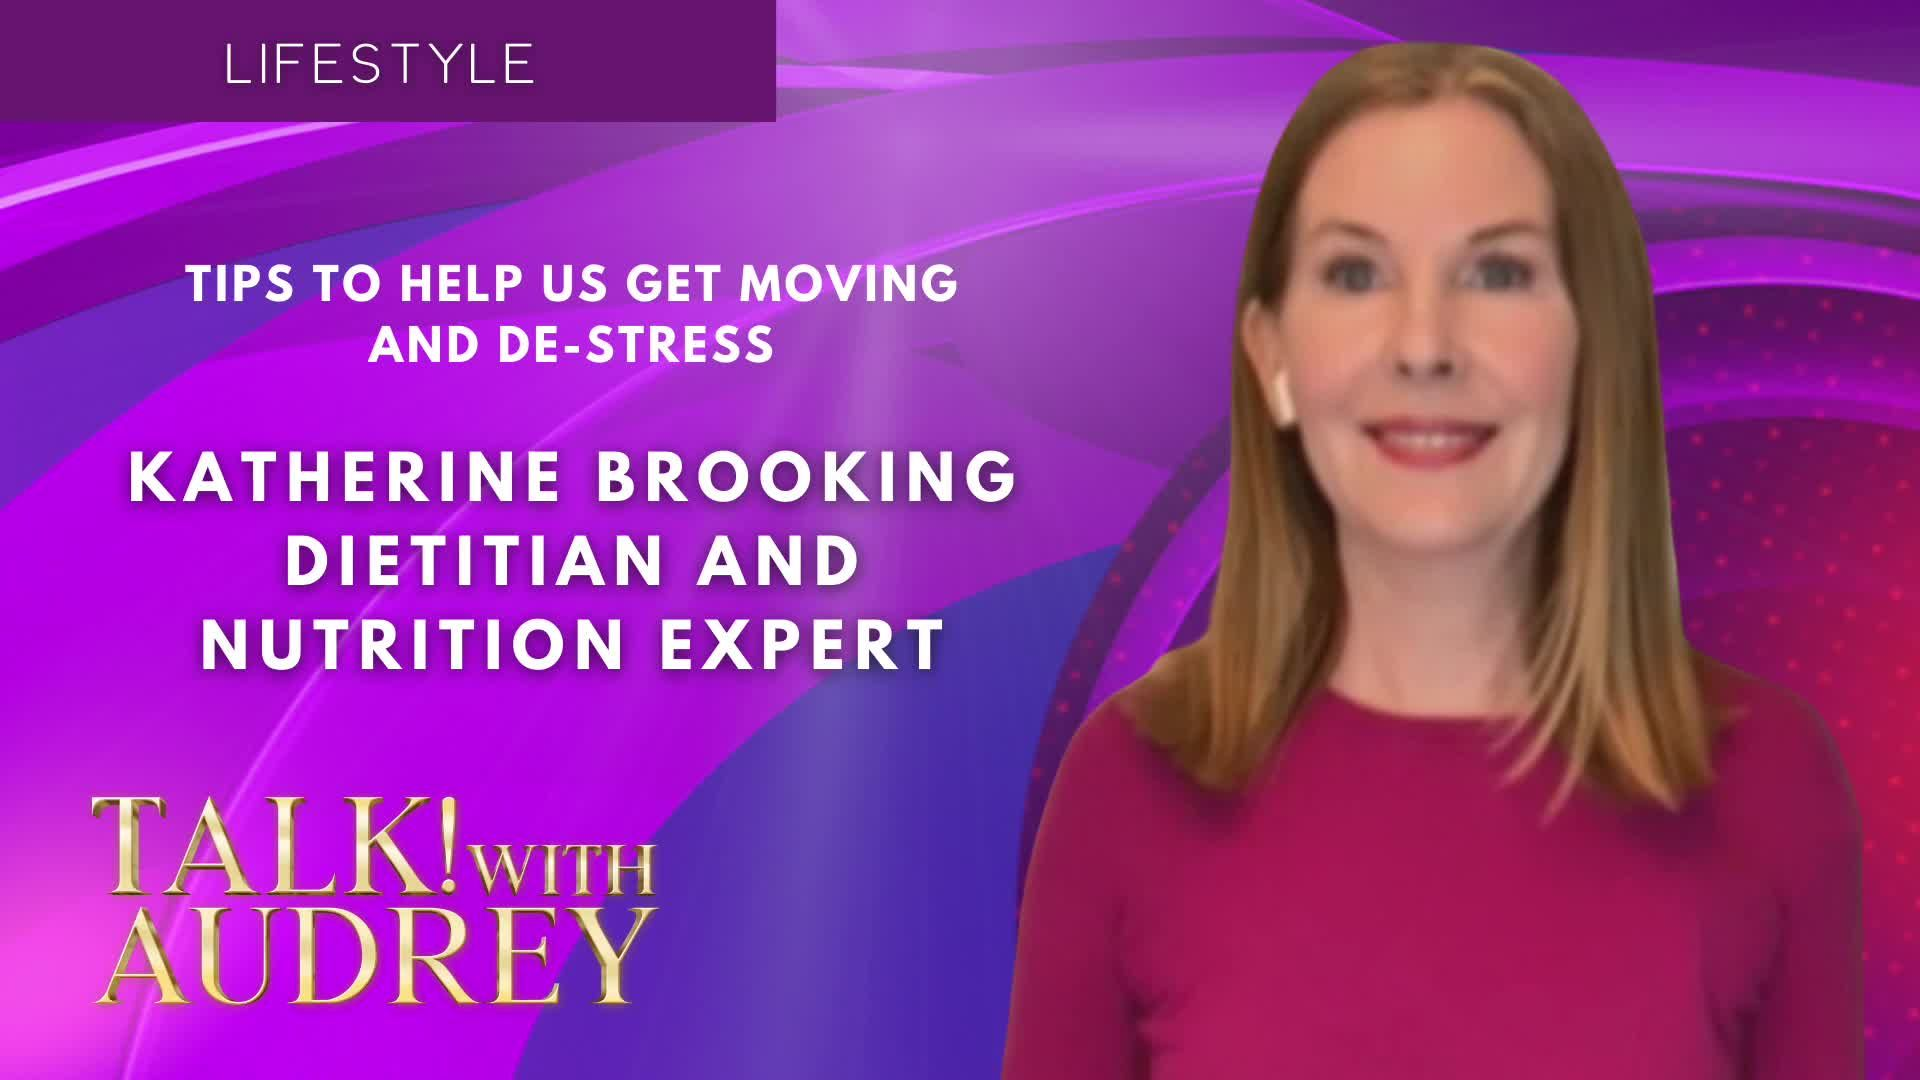 TALK! with AUDREY – Katherine Brooking - Tips to Help Us Get Moving and De-stress